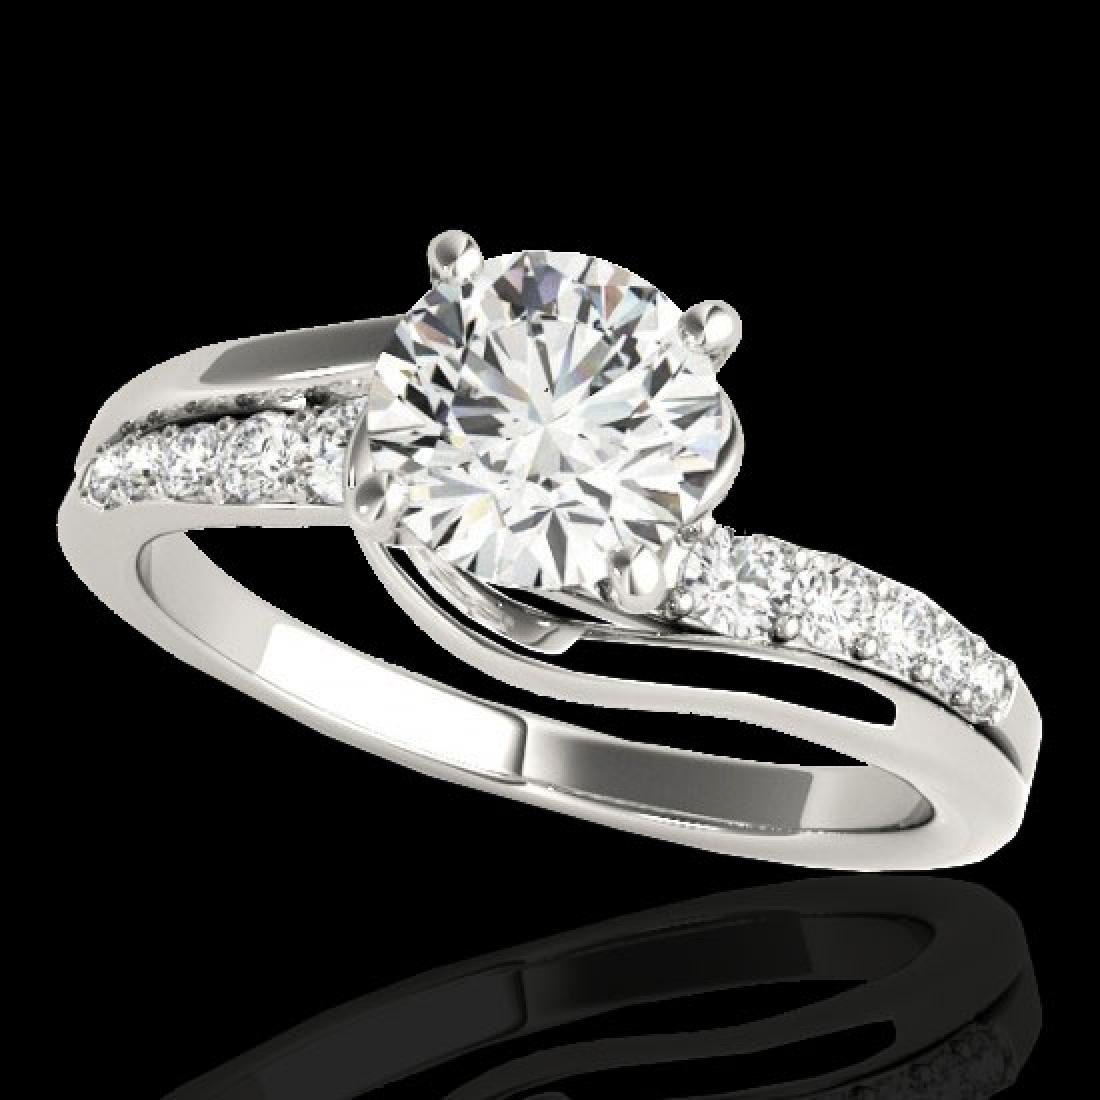 1.31 CTW H-SI/I Certified Diamond Bypass Solitaire Ring